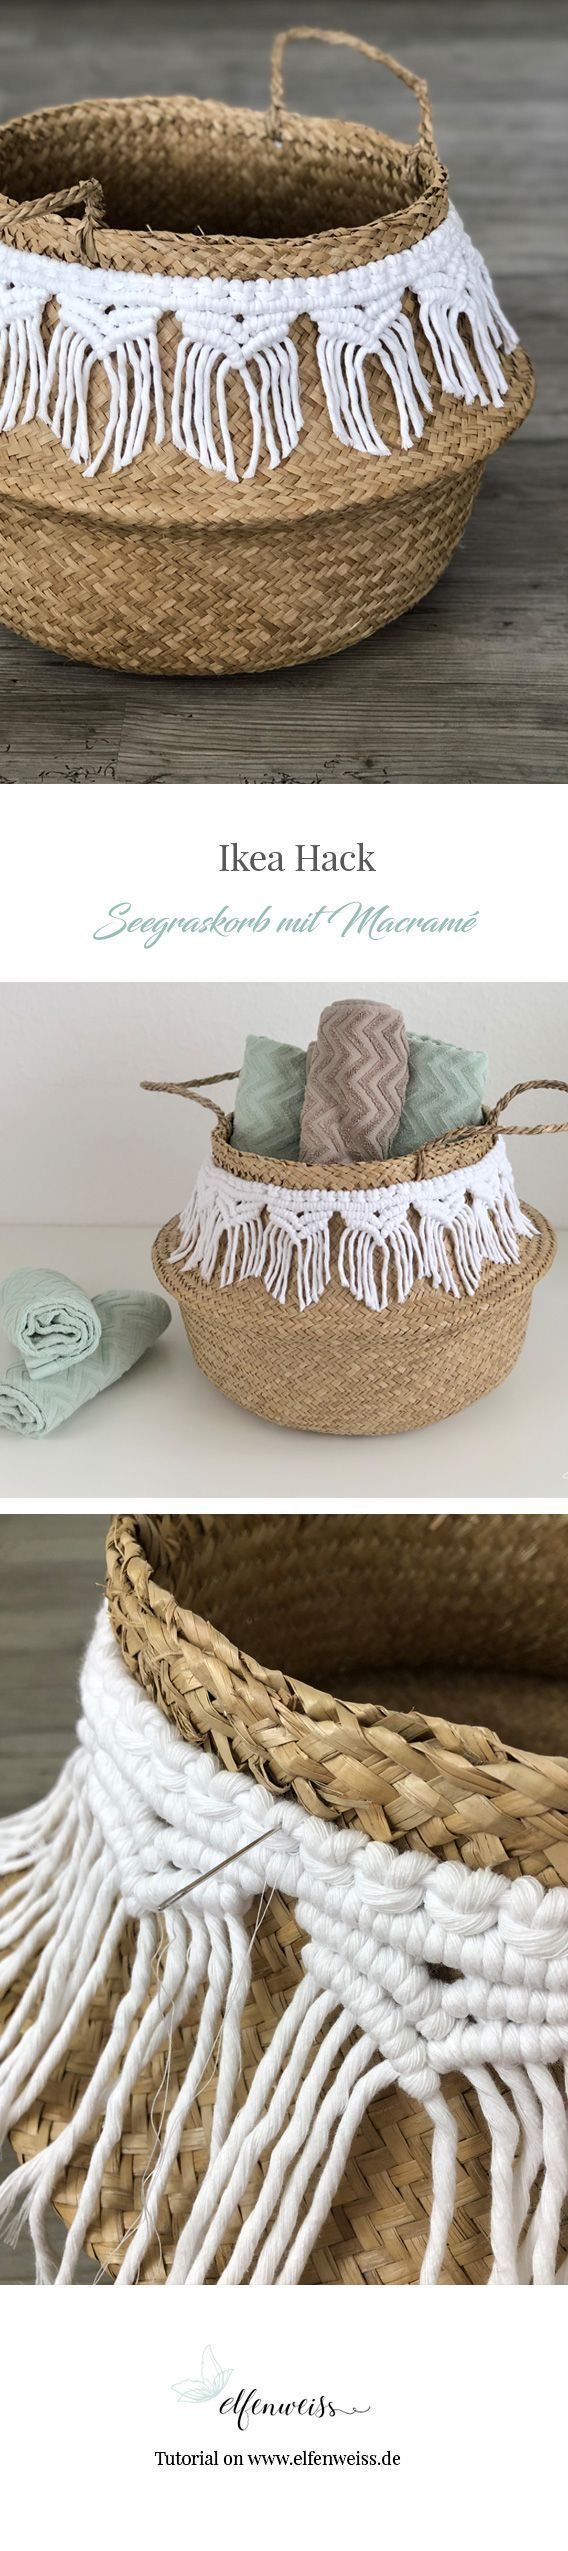 DIY boho basket with macramé trim